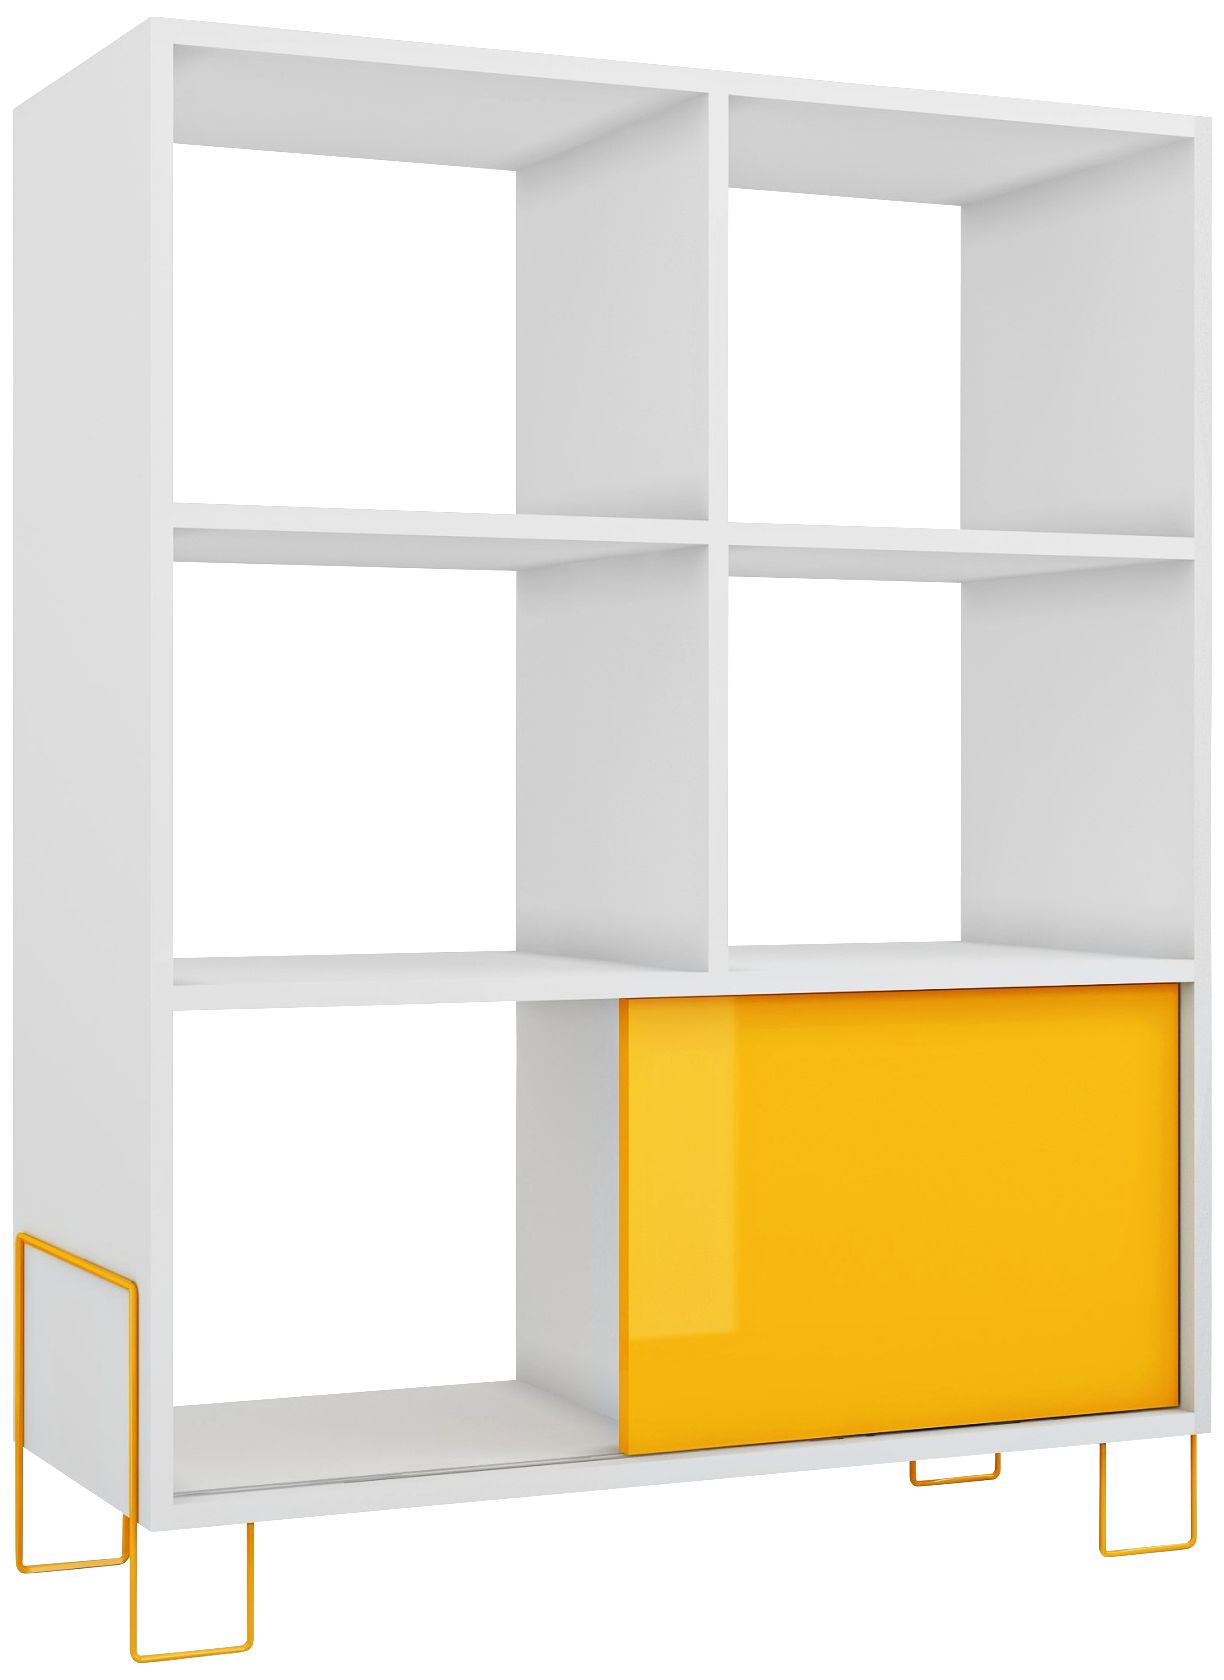 boden 6shelf yellow and white frame midhigh bookcase